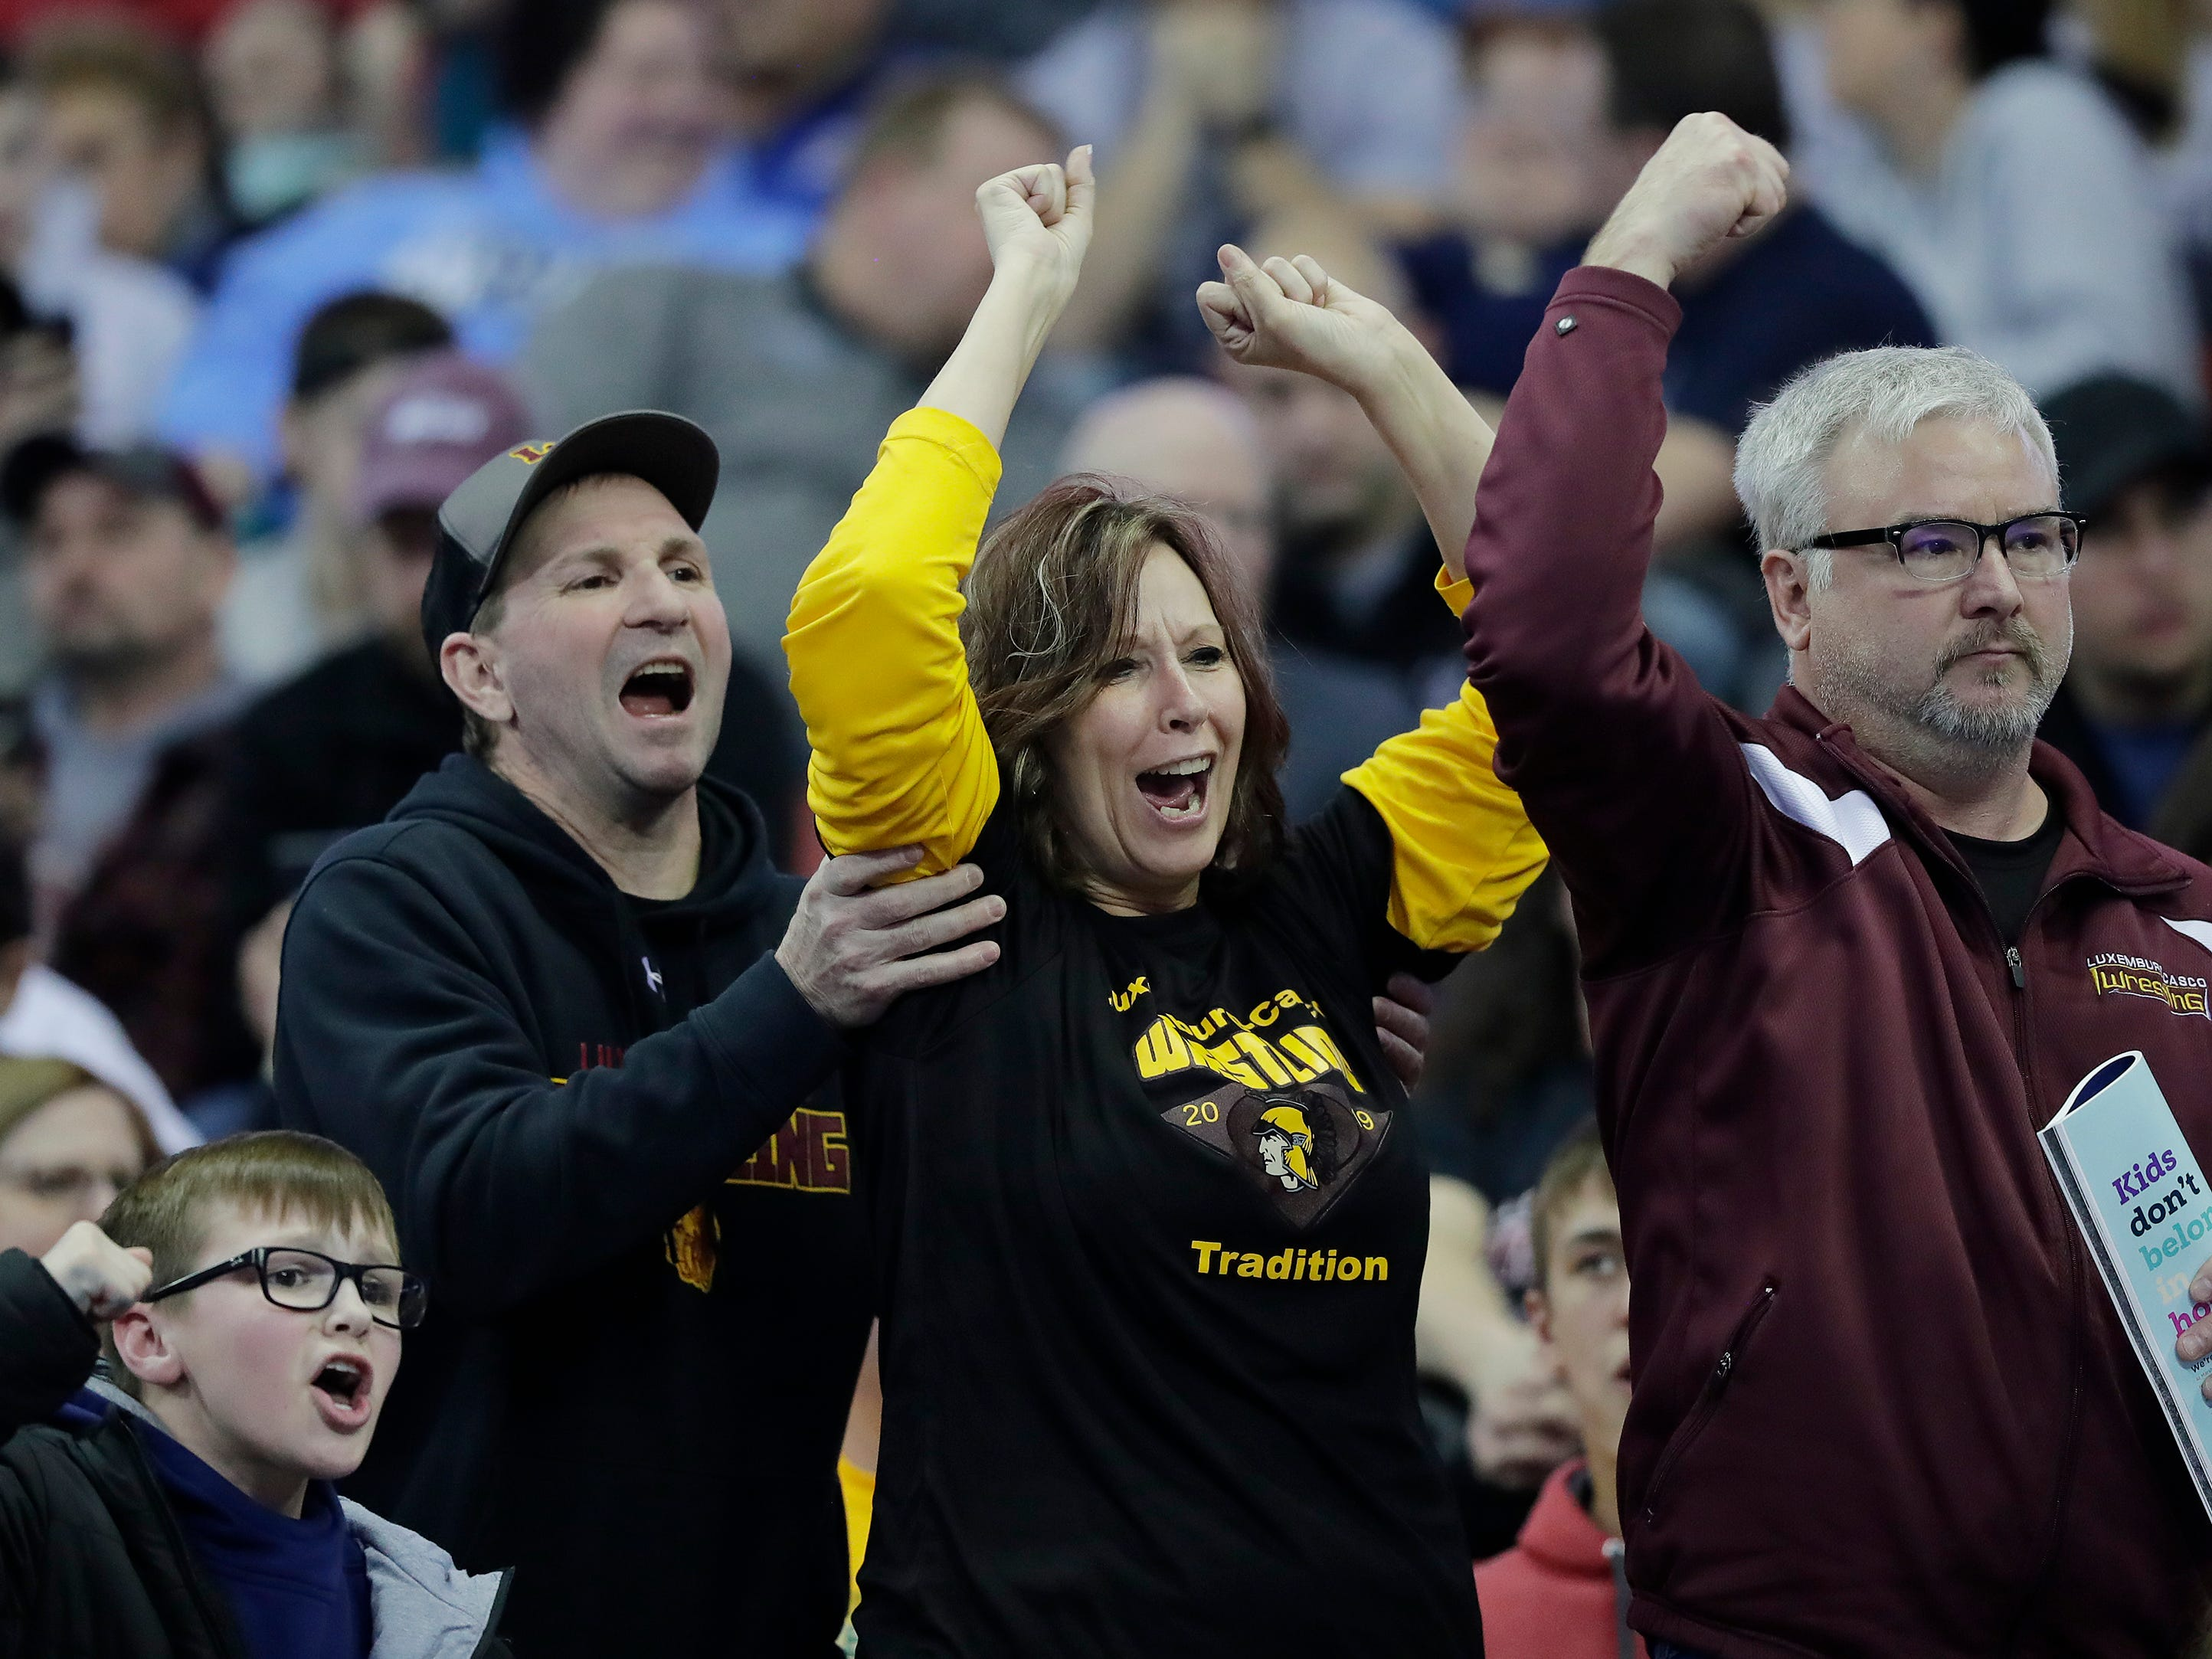 Luxemburg-Casco fans cheer during day 1 at the WIAA state individual wrestling tournament at the Kohl Center on Thursday, February 21, 2019 in Madison, Wis.